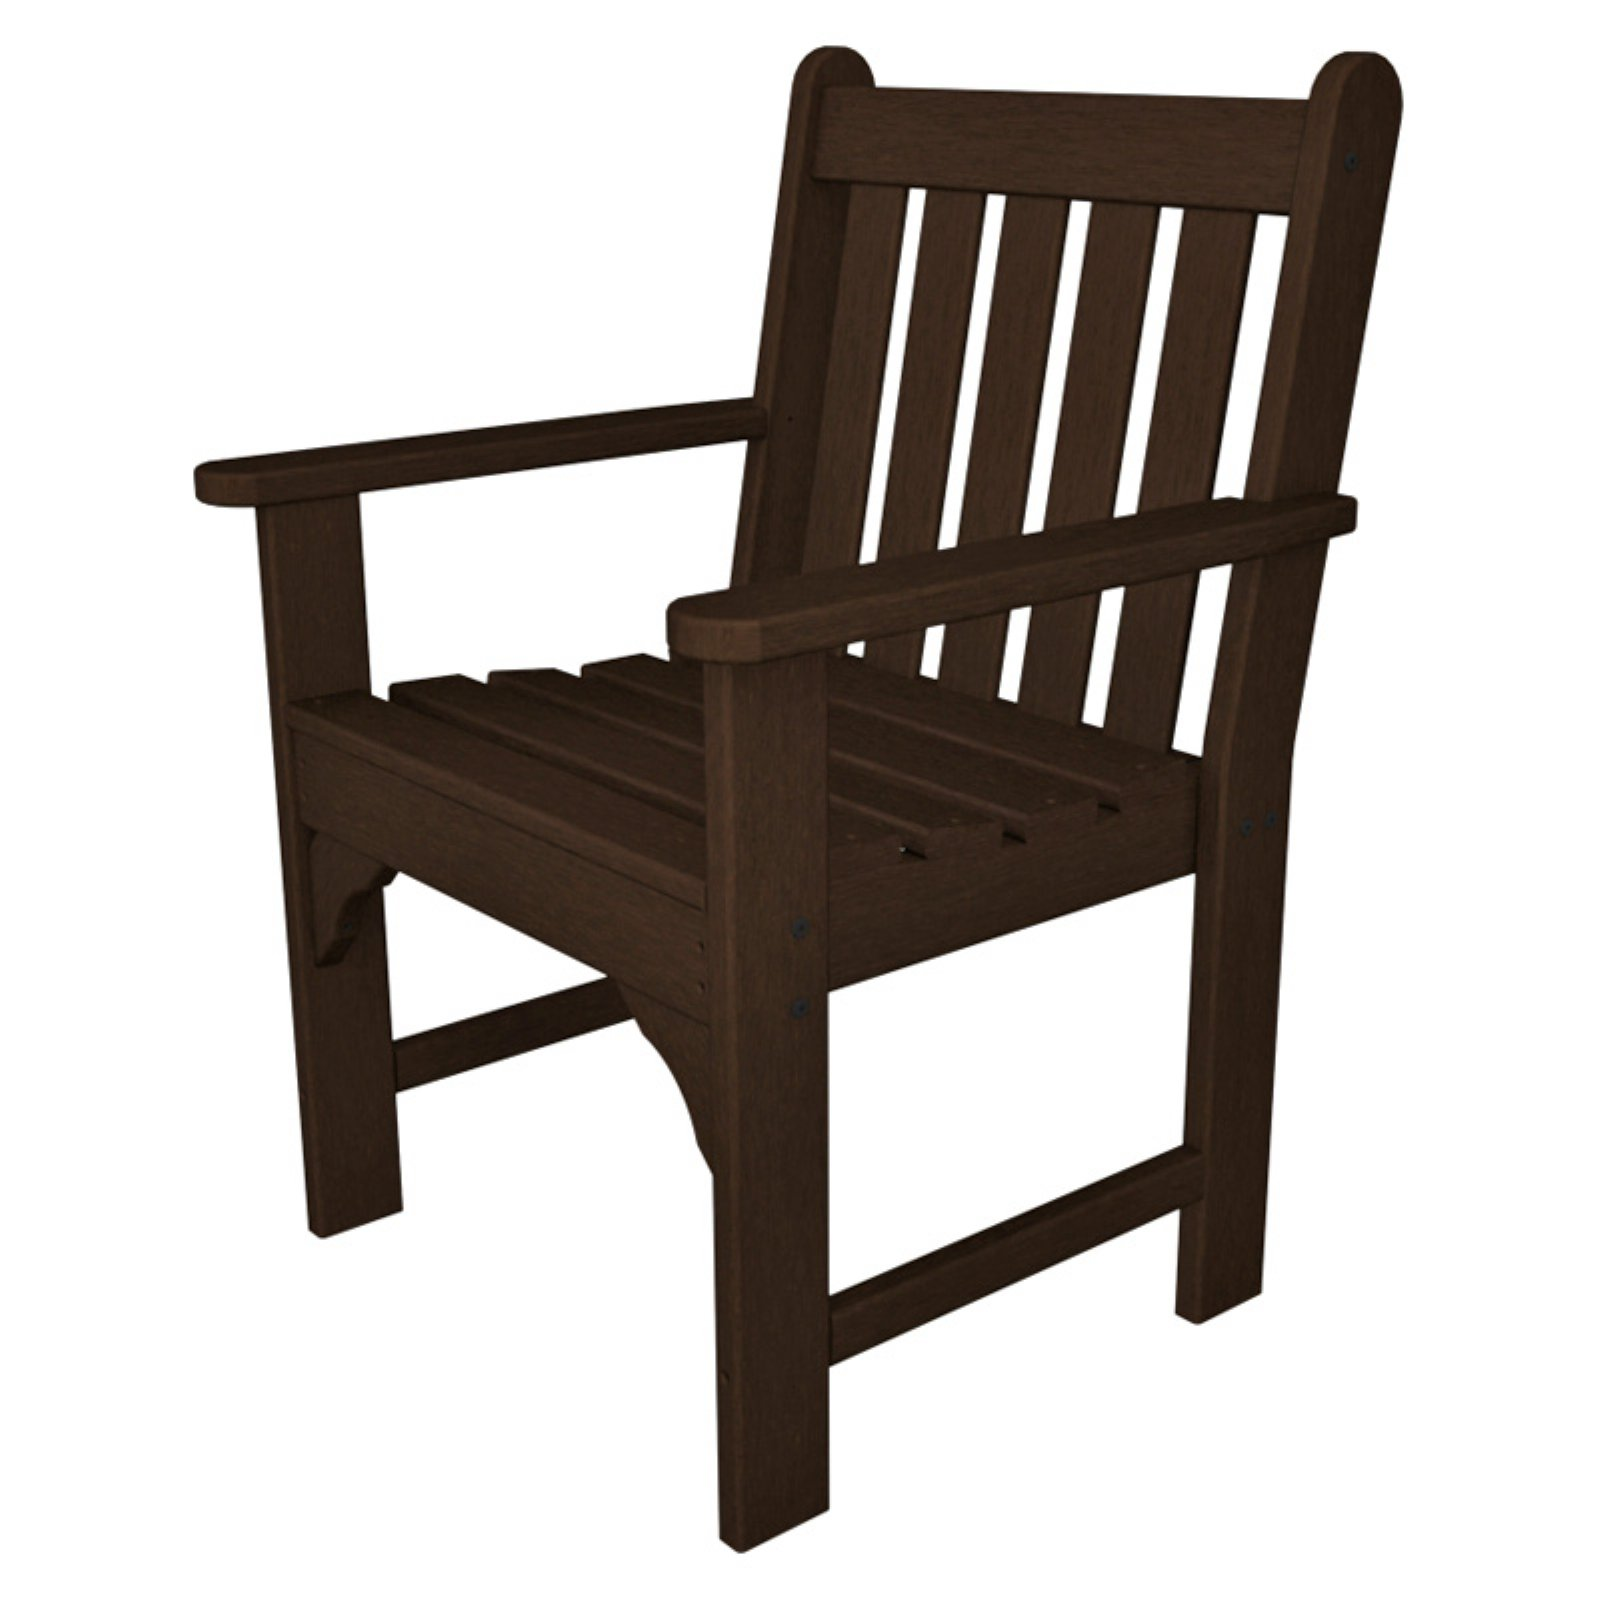 POLYWOOD® Vineyard Recycled Plastic Garden Arm Chair